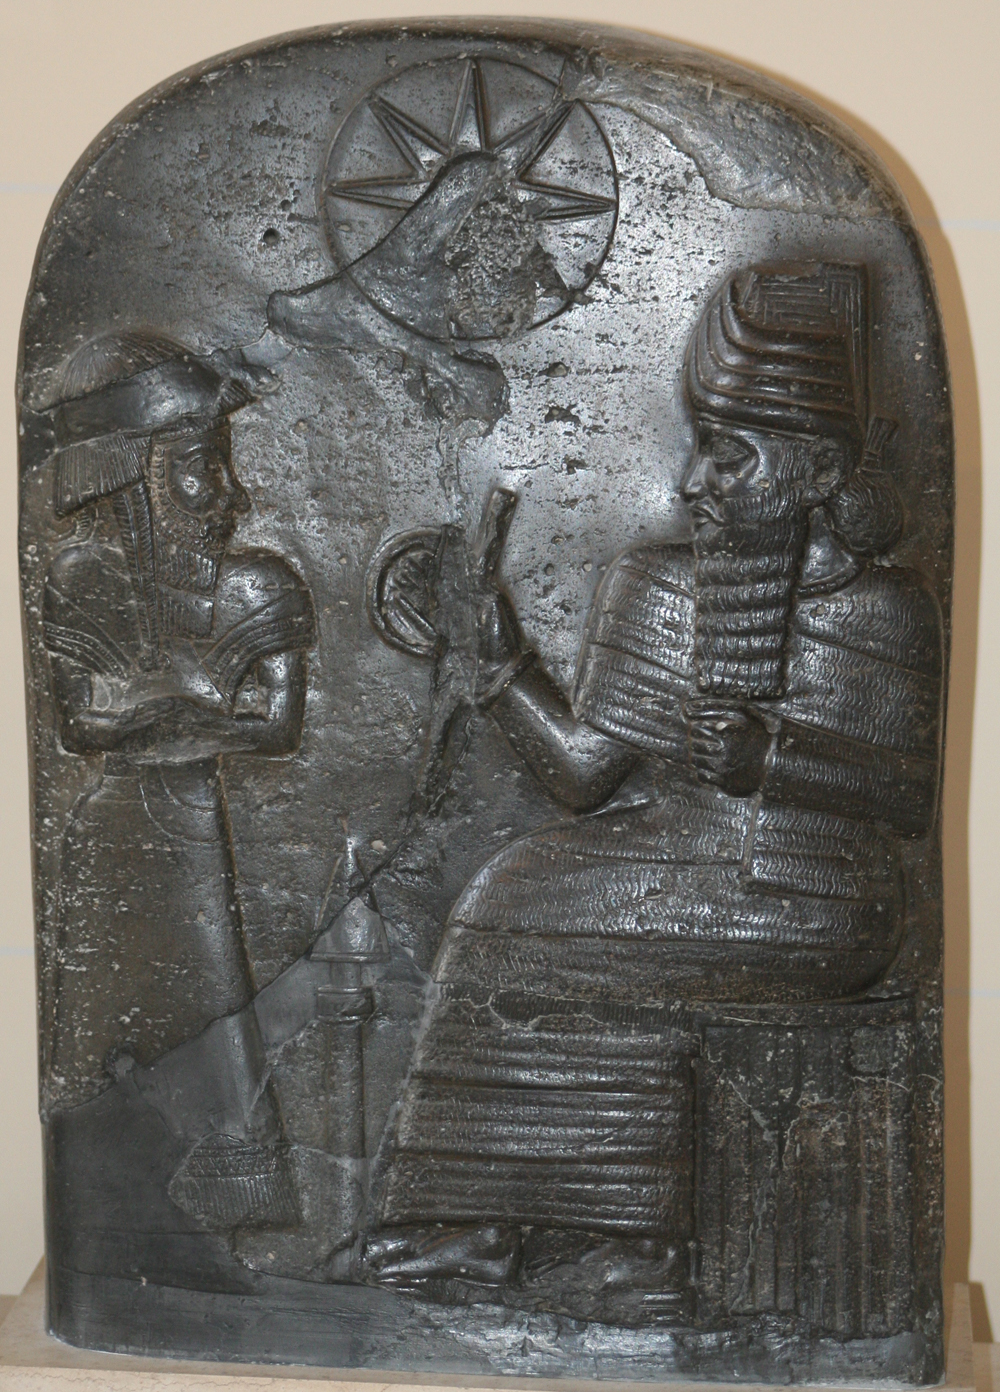 essays on hammurabis code The code of hammurabi essaysthe law code developed by king hammurabi  had a seemingly cruel and unusual system of punishment the 282 case laws.